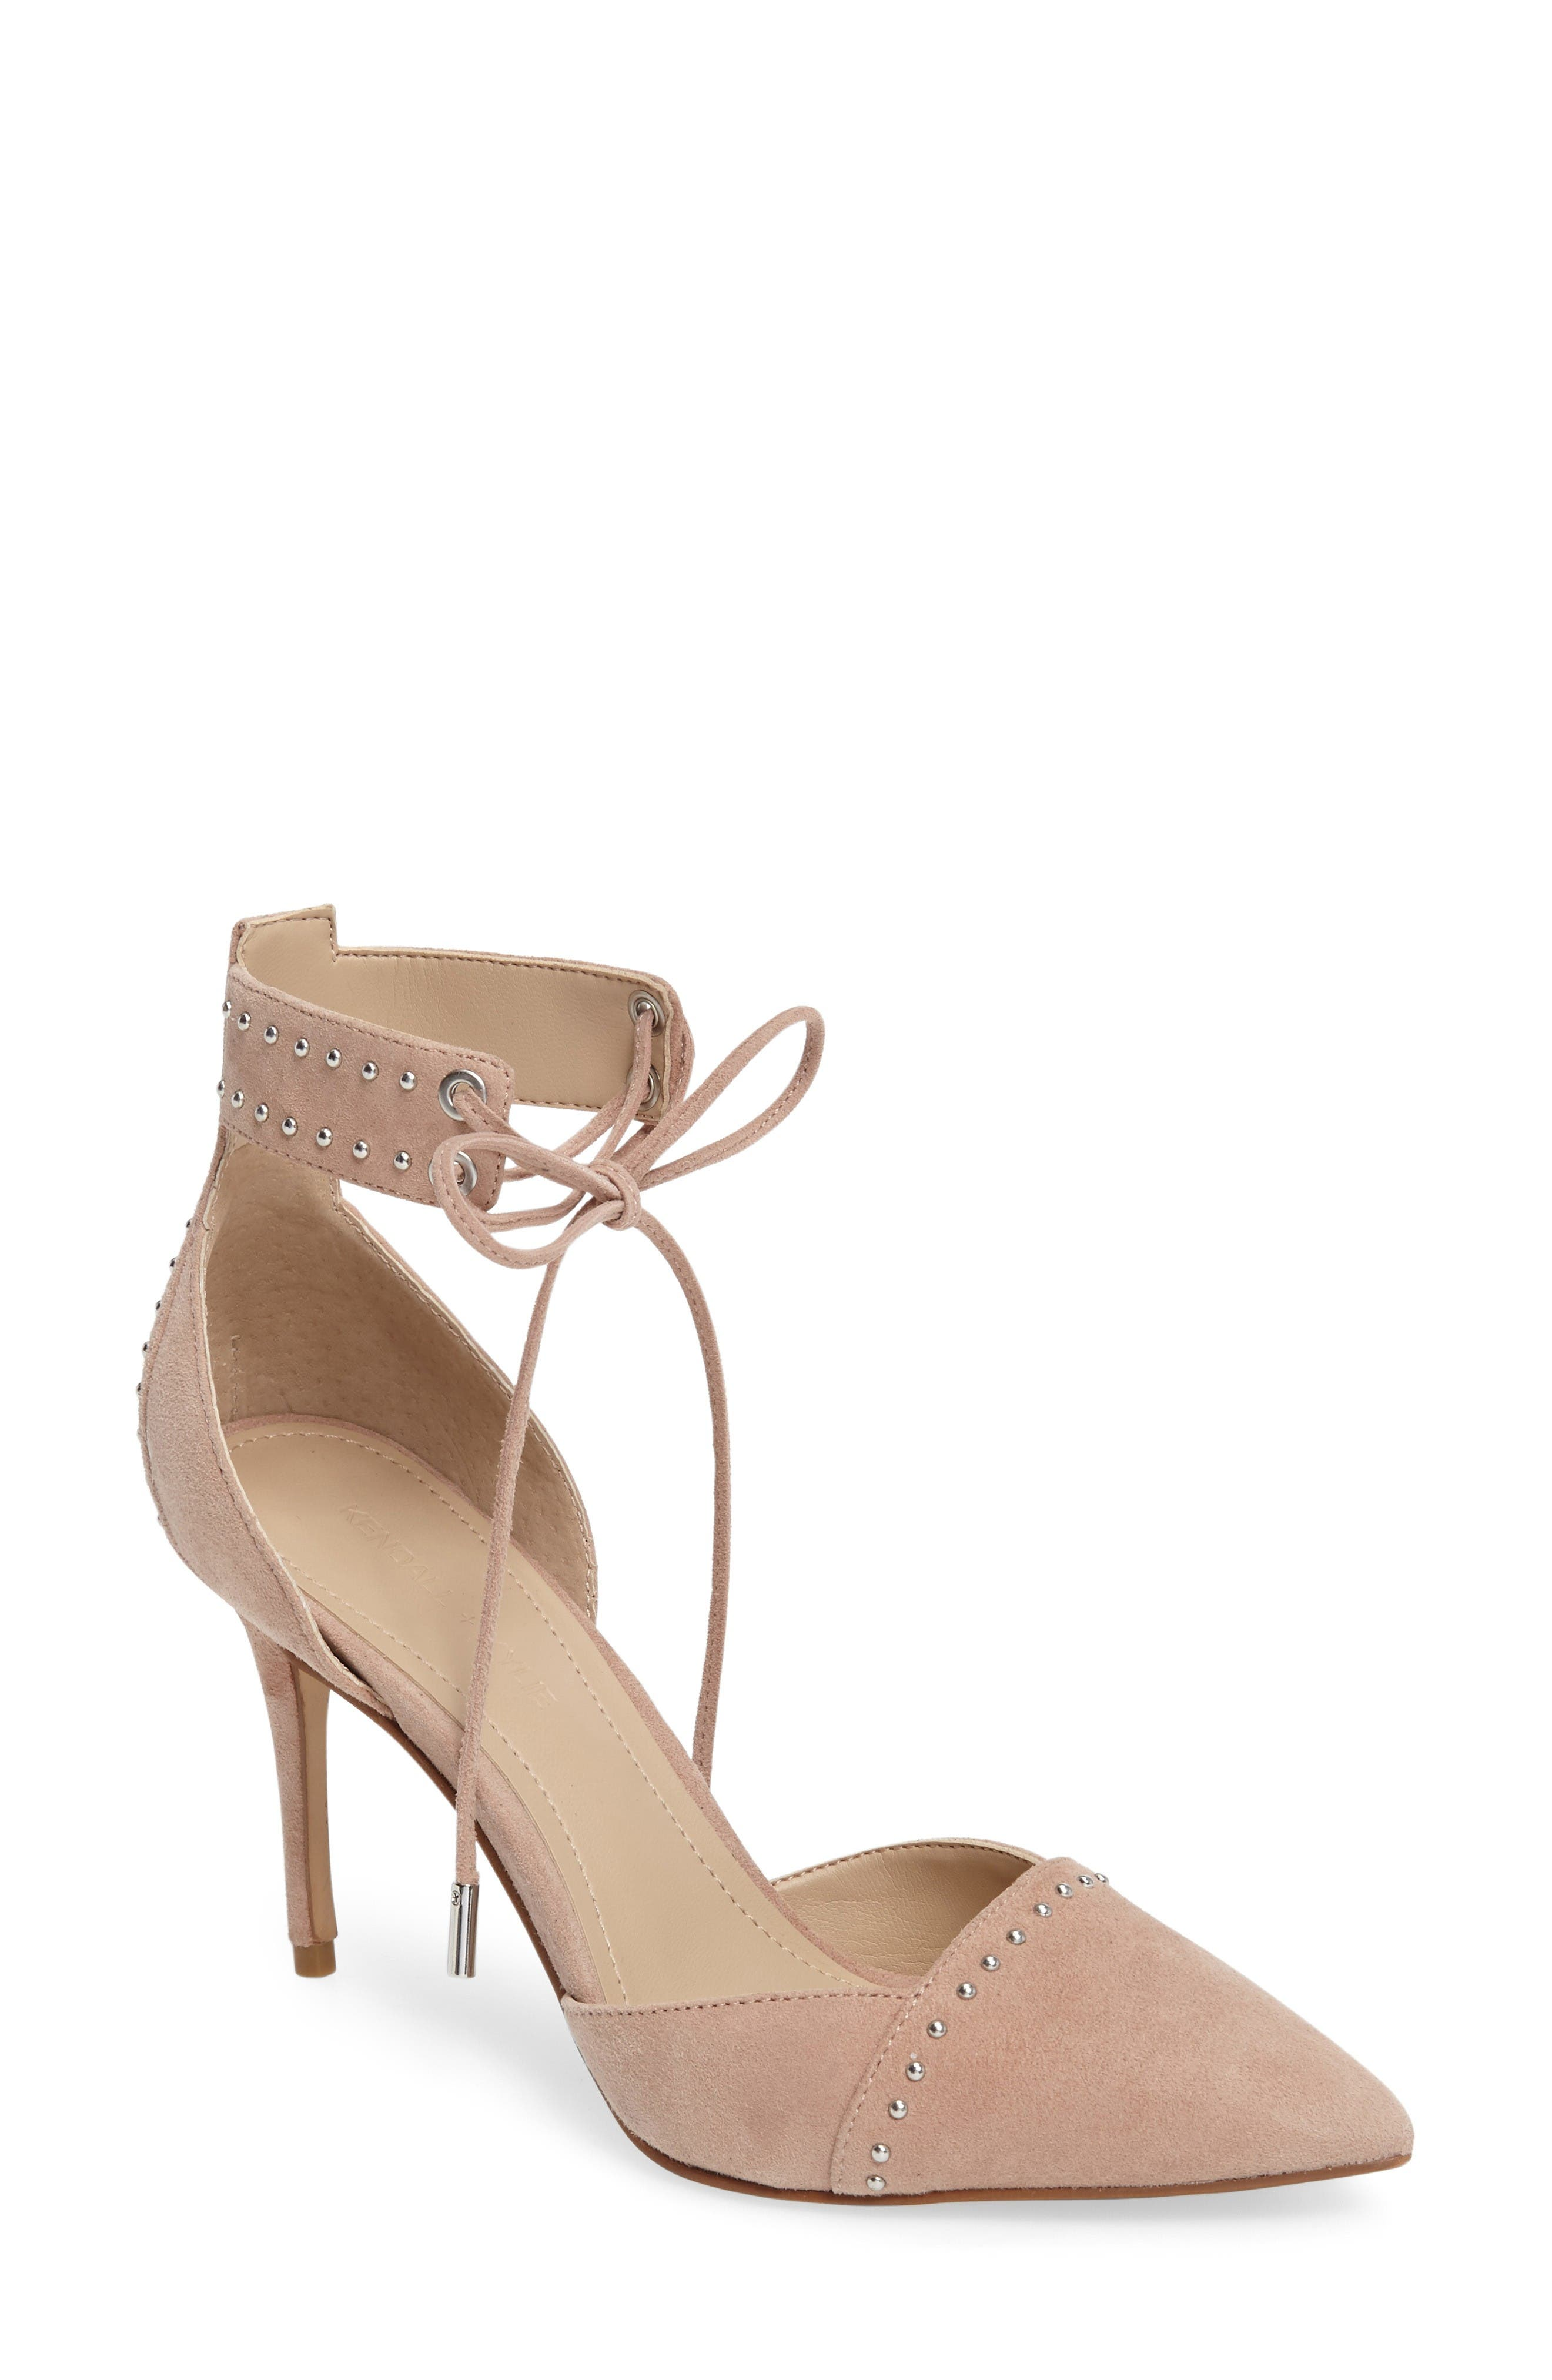 Main Image - KENDALL + KYLIE Cora Ankle Strap Pump (Women)